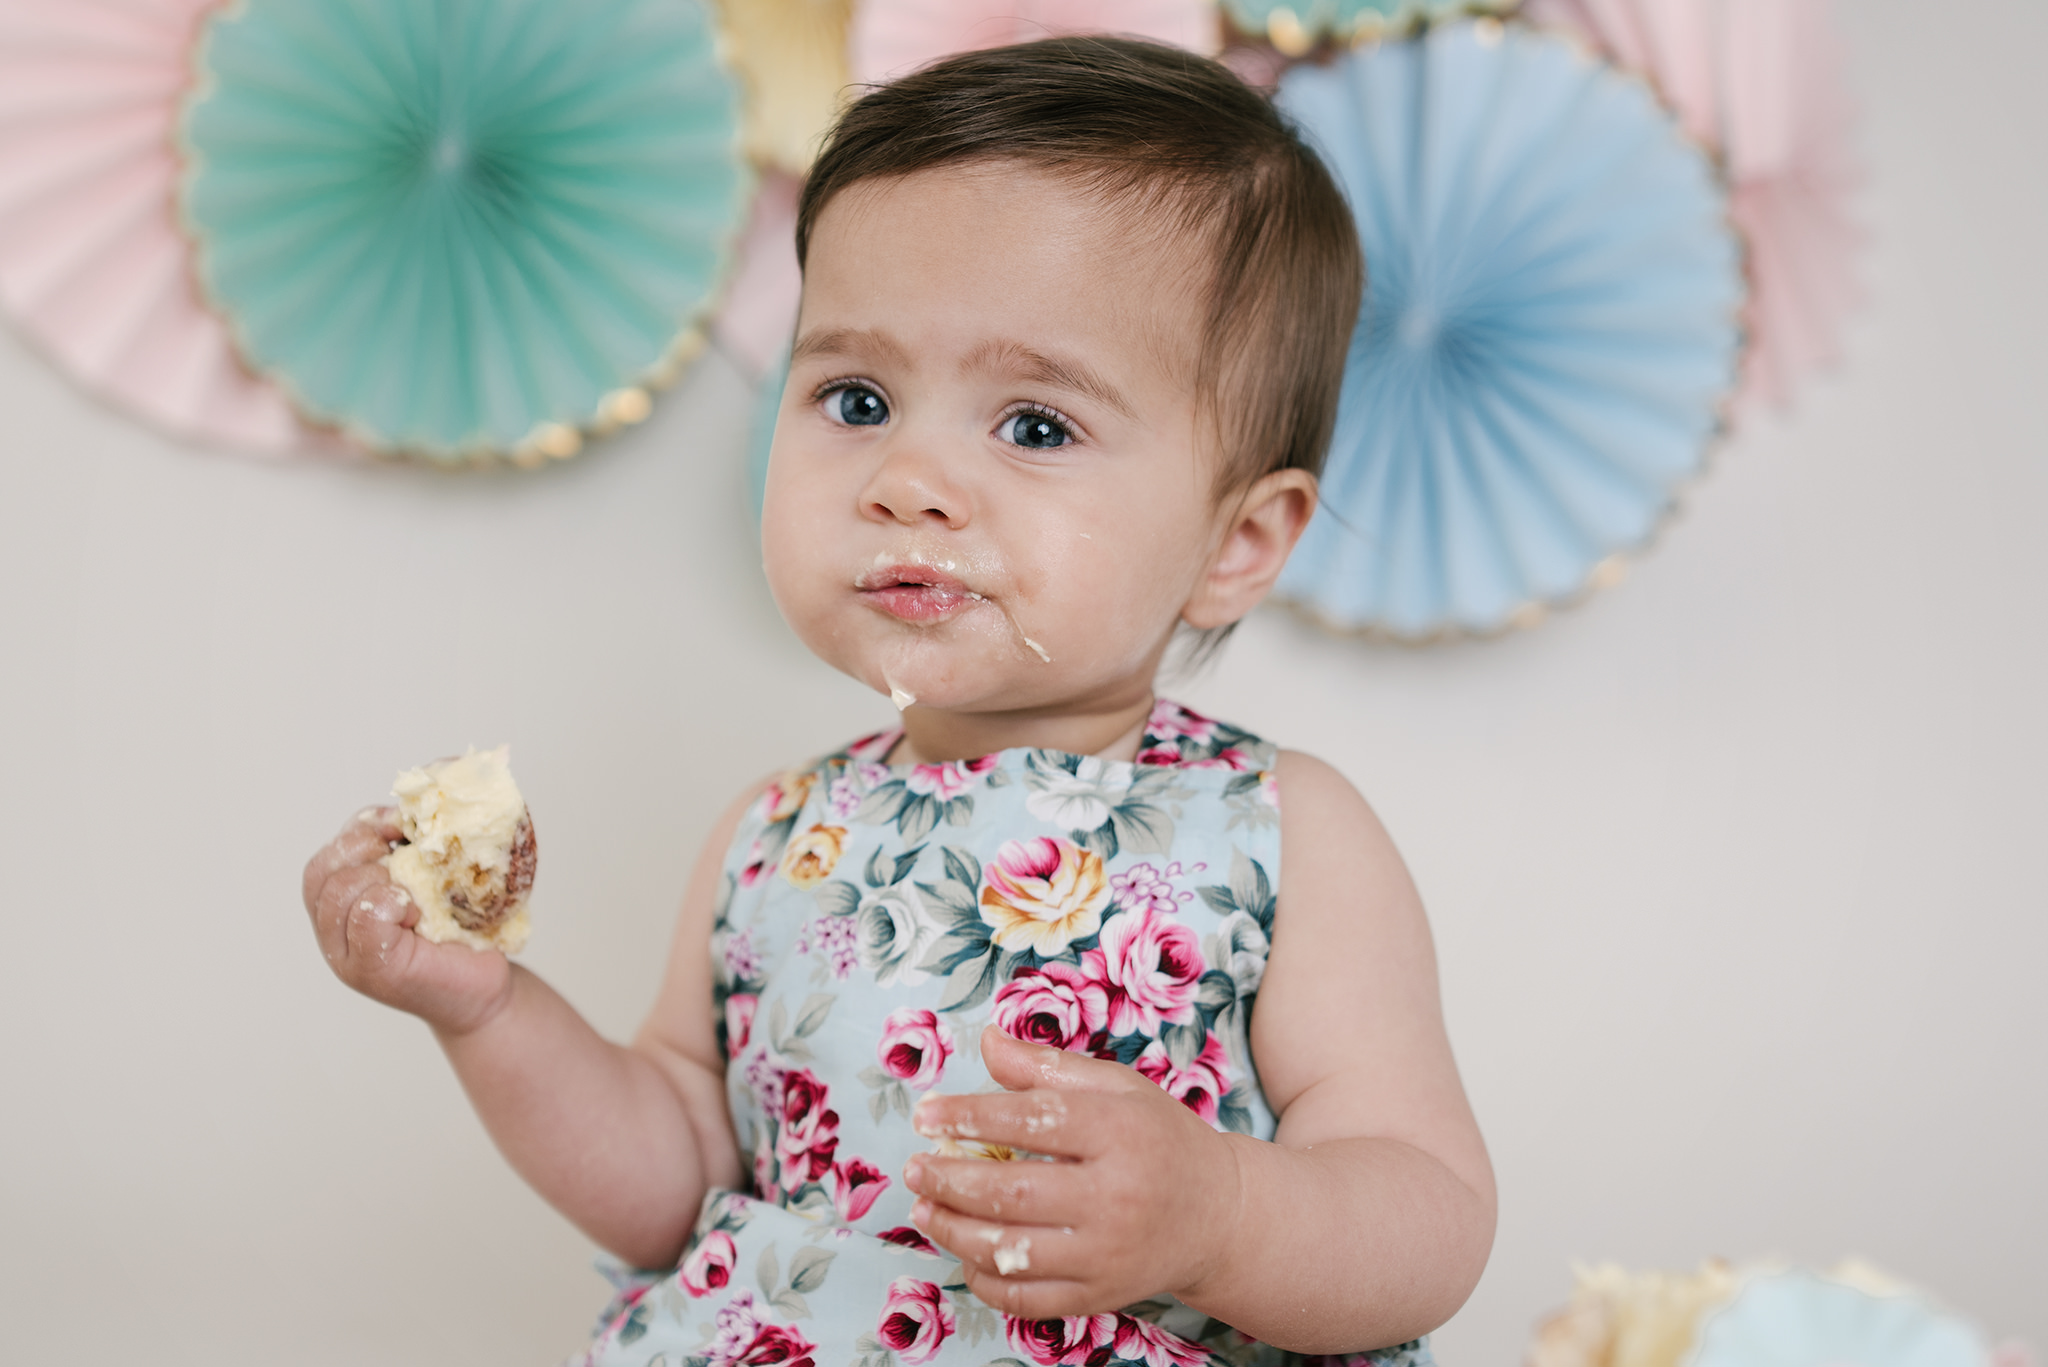 little girl with fans behind with a mouthful of cake | Cake Smash Photographer Aylesbury Buckinghamshire and Thame Oxfordshire